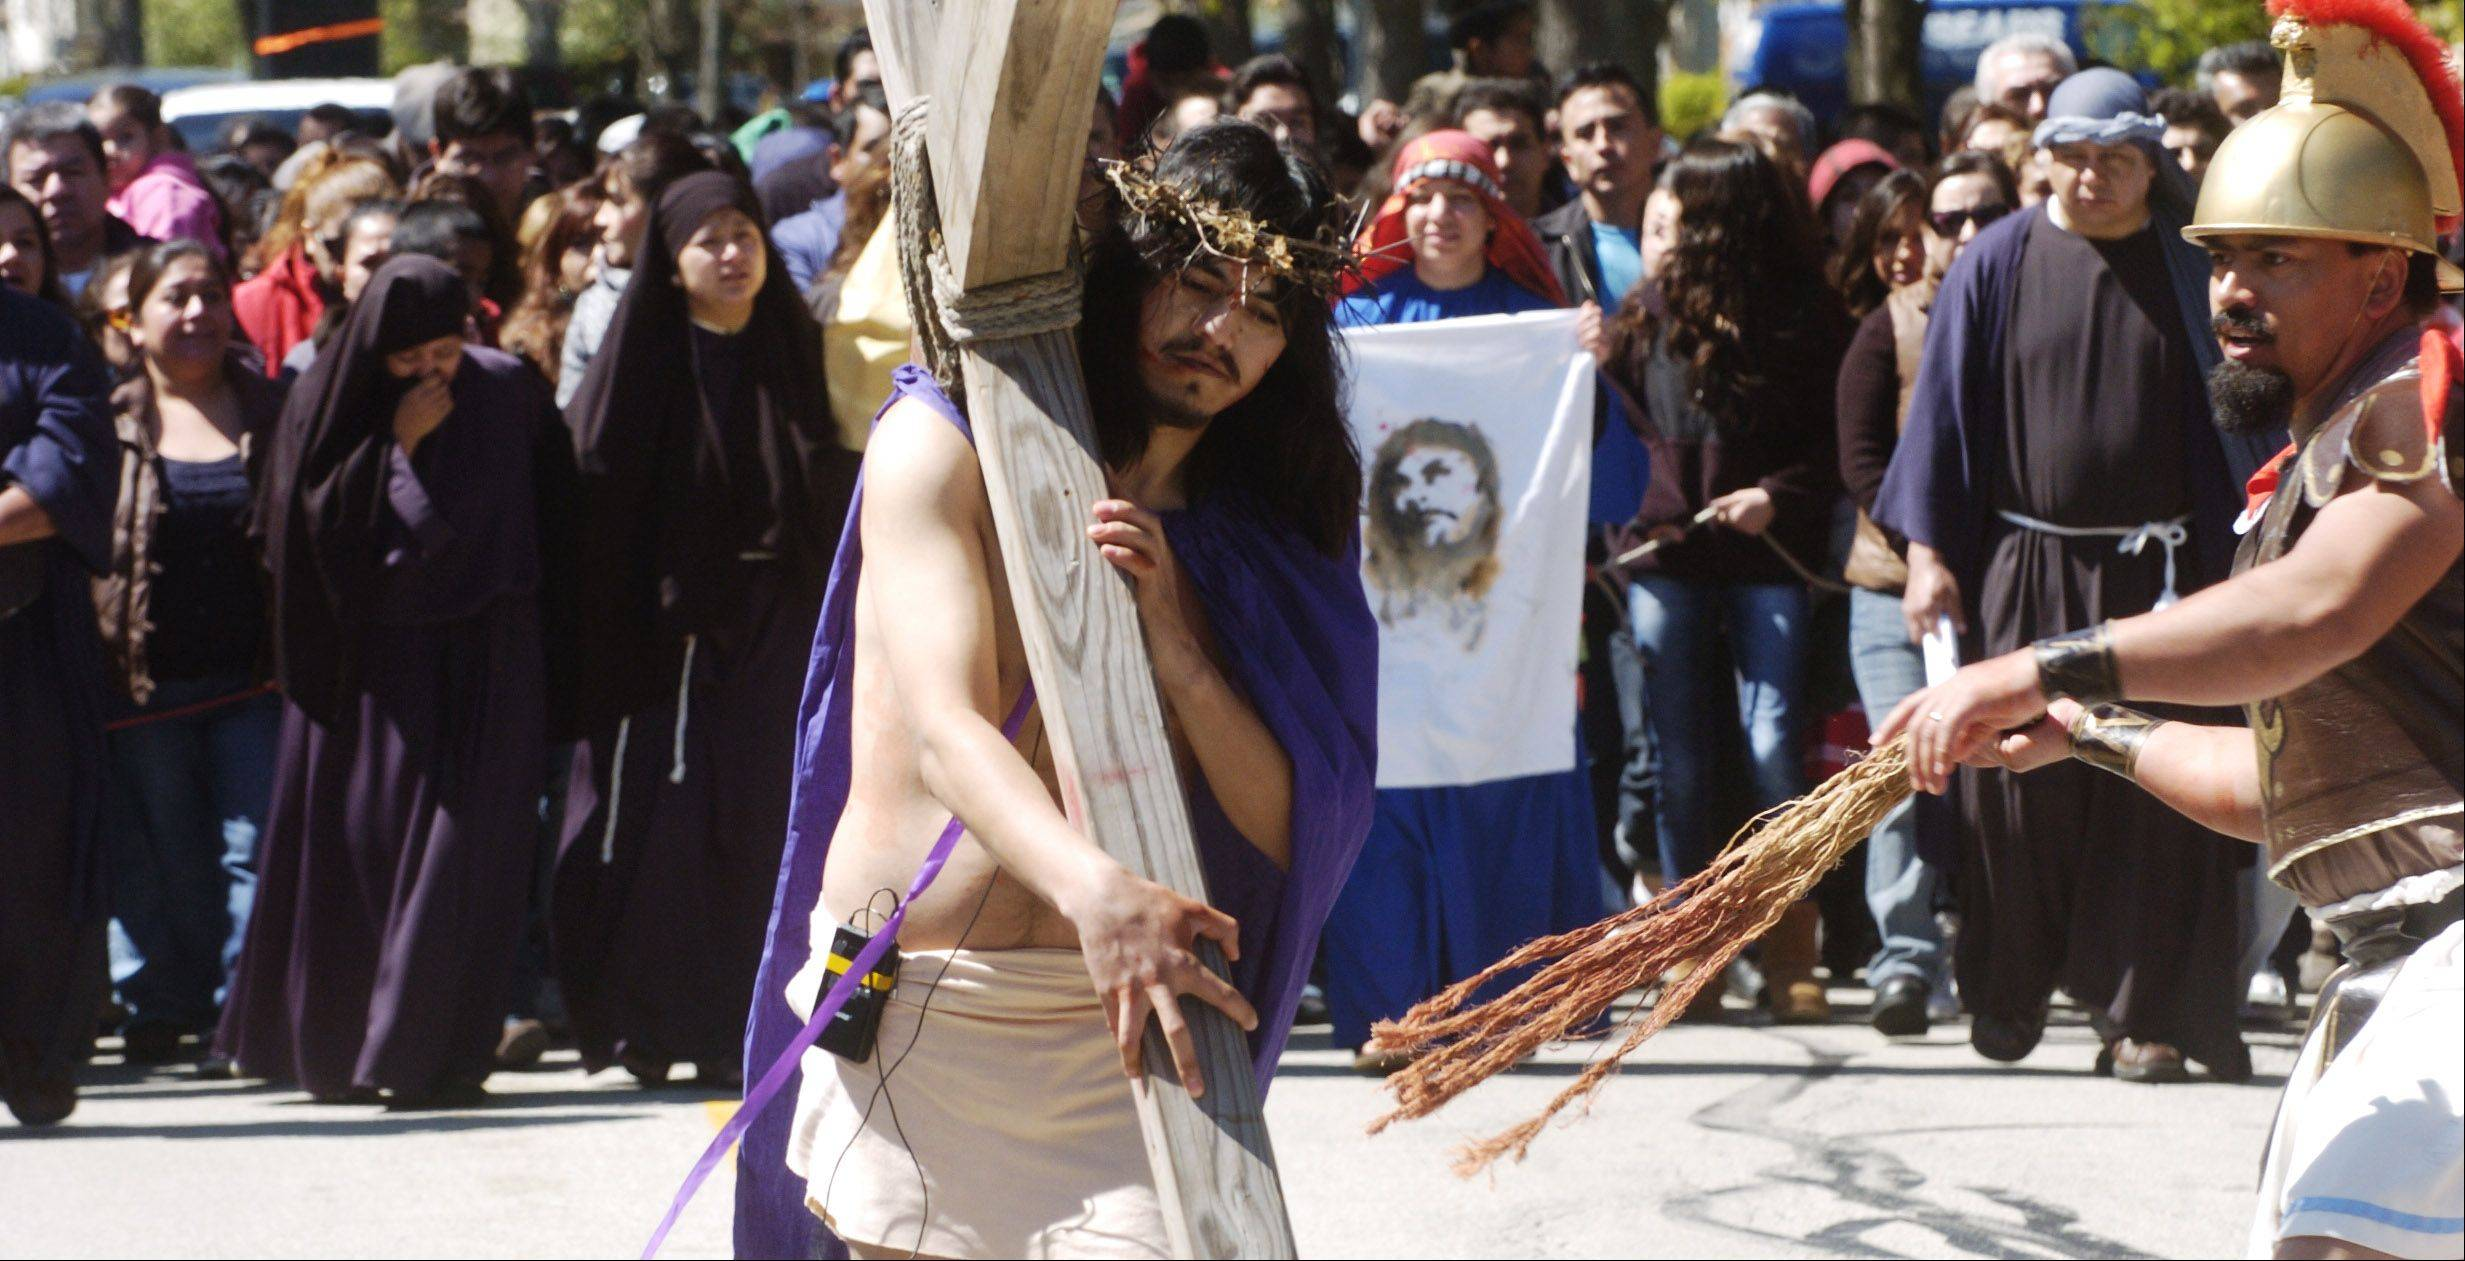 Jesus, played by Martin Carrera, carries his cross during the live Way of the Cross procession between St. Thomas of Villanova in Palatine and Mission San Juan Diego in Arlington Heights on Good Friday.